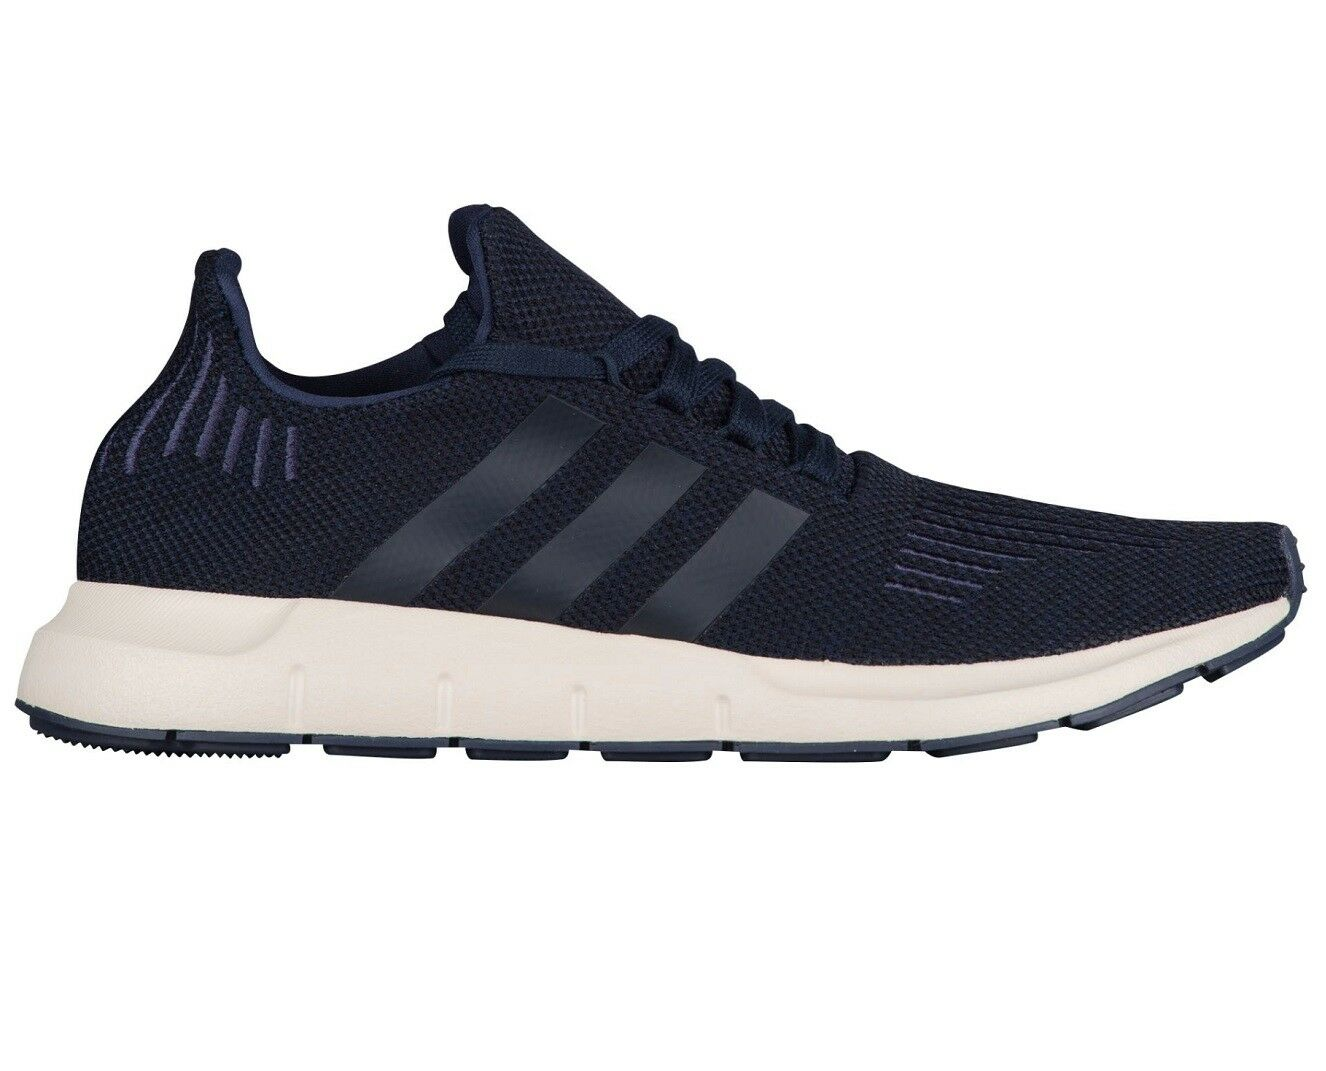 Adidas Swift Run Mens AC7165 Navy Trace Blue Knit Running Shoes Size 9